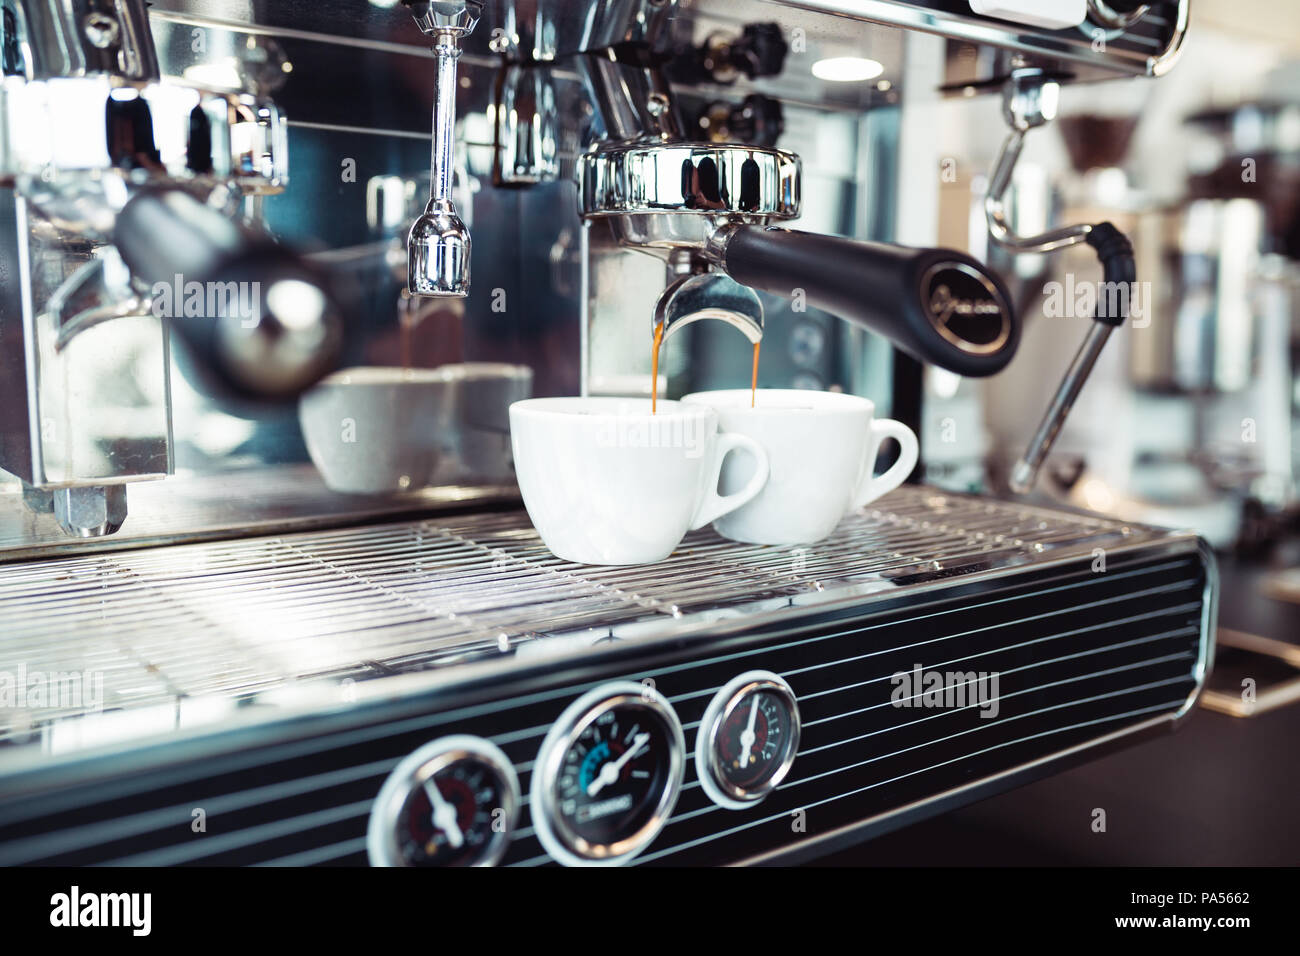 Espresso pouring from coffee machine into coffee cup. - Stock Image